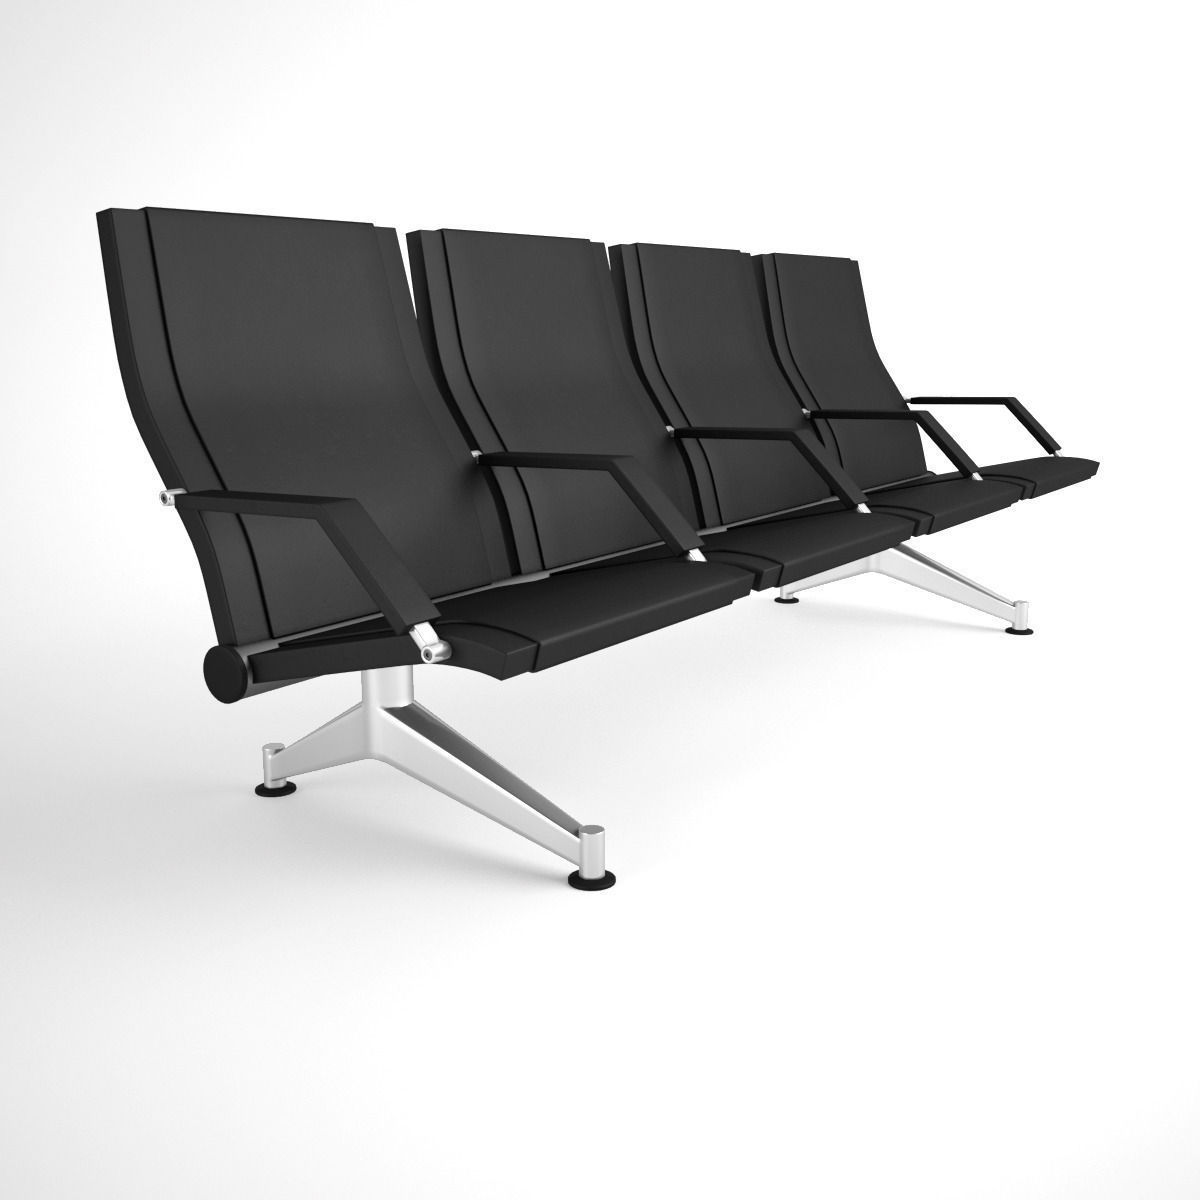 Figueras 3100 Mauro Ergonomic Benches For Airports 3d